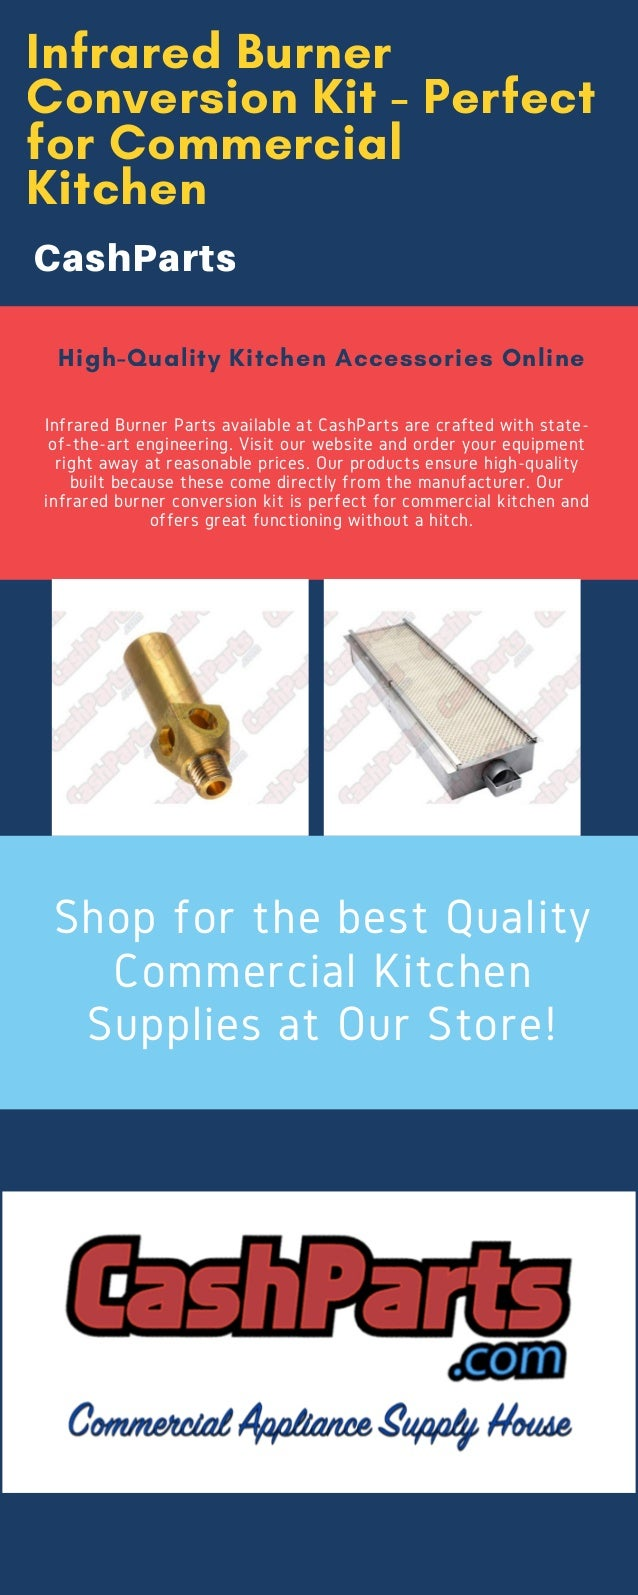 Infrared Burner Parts - Best Quality Commercial Kitchen Supplies